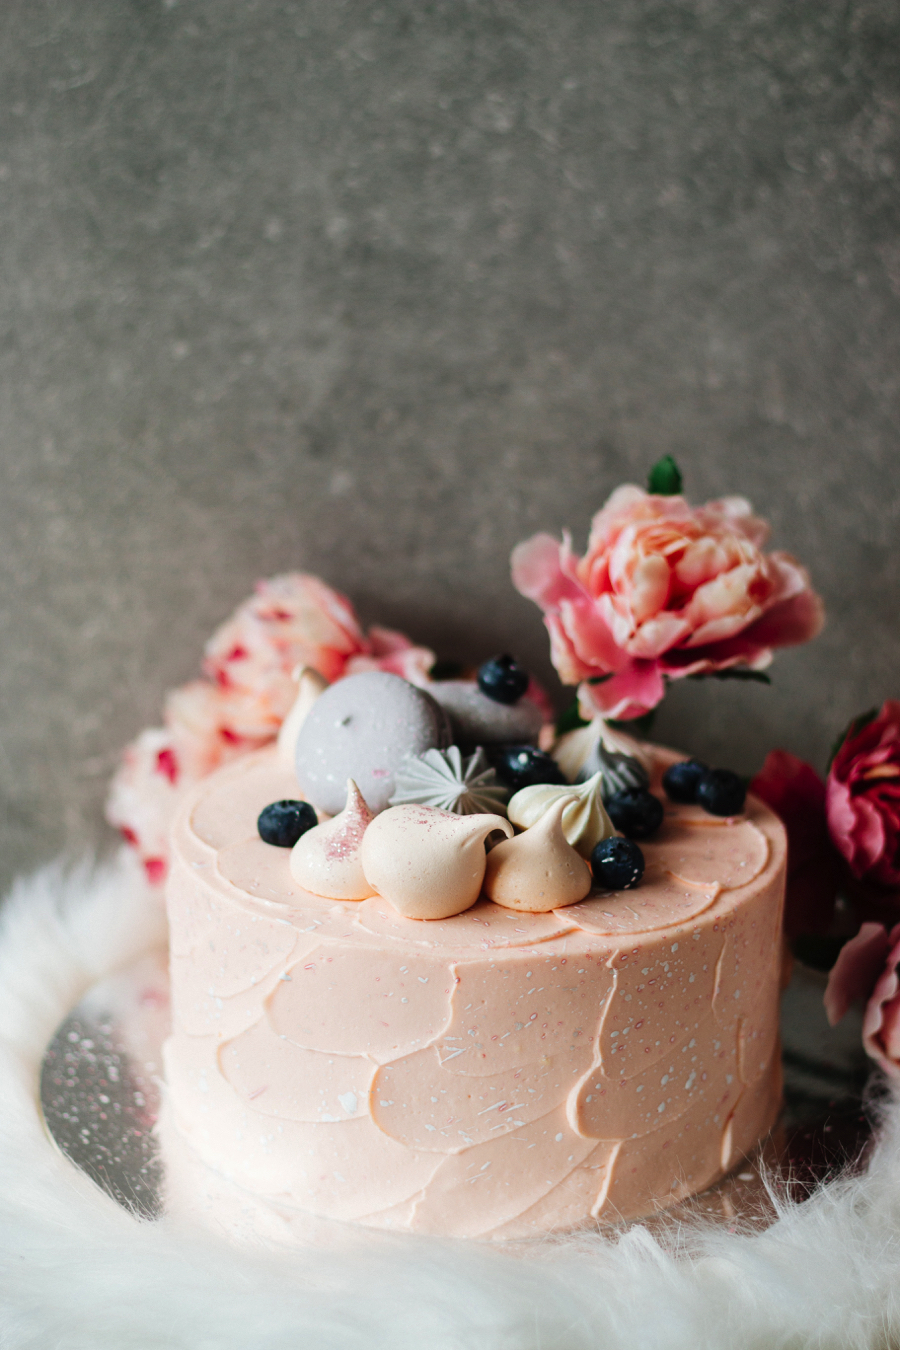 cake-wedding-cake-trends-2019_1.jpg